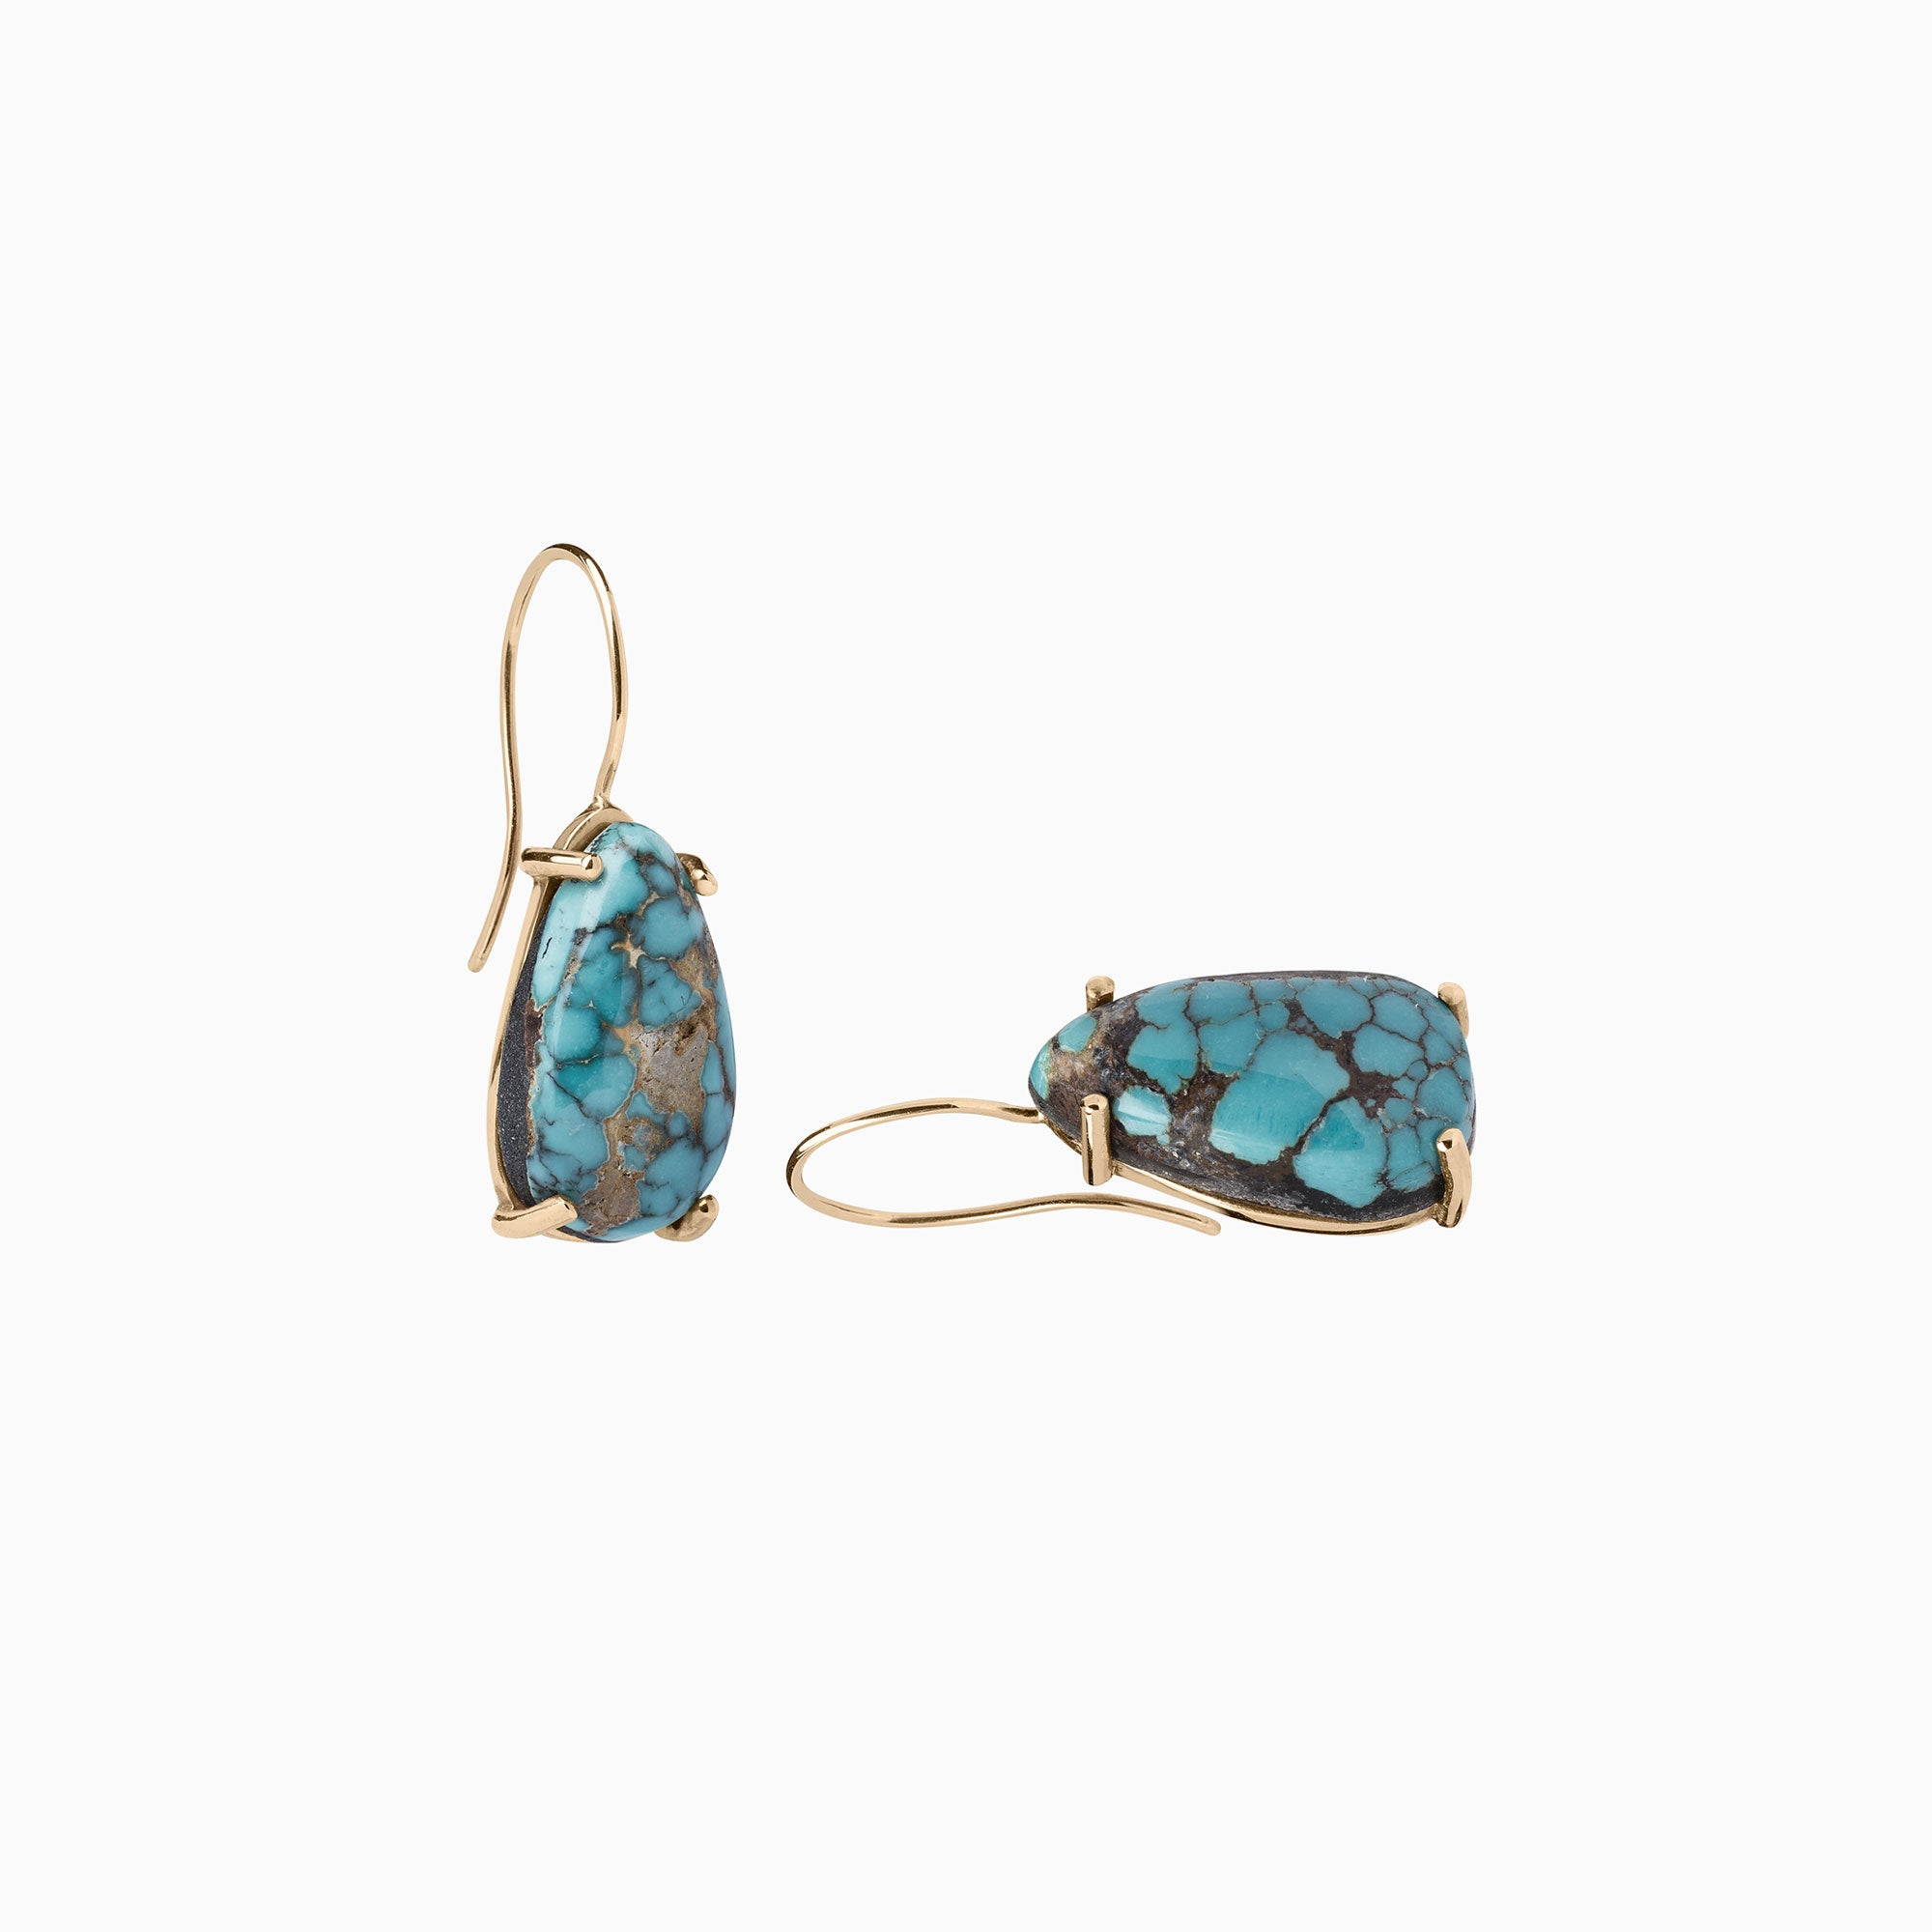 Nessa Designs Jewelry | Earrings | Tranquil Blues Turquoise Earrings